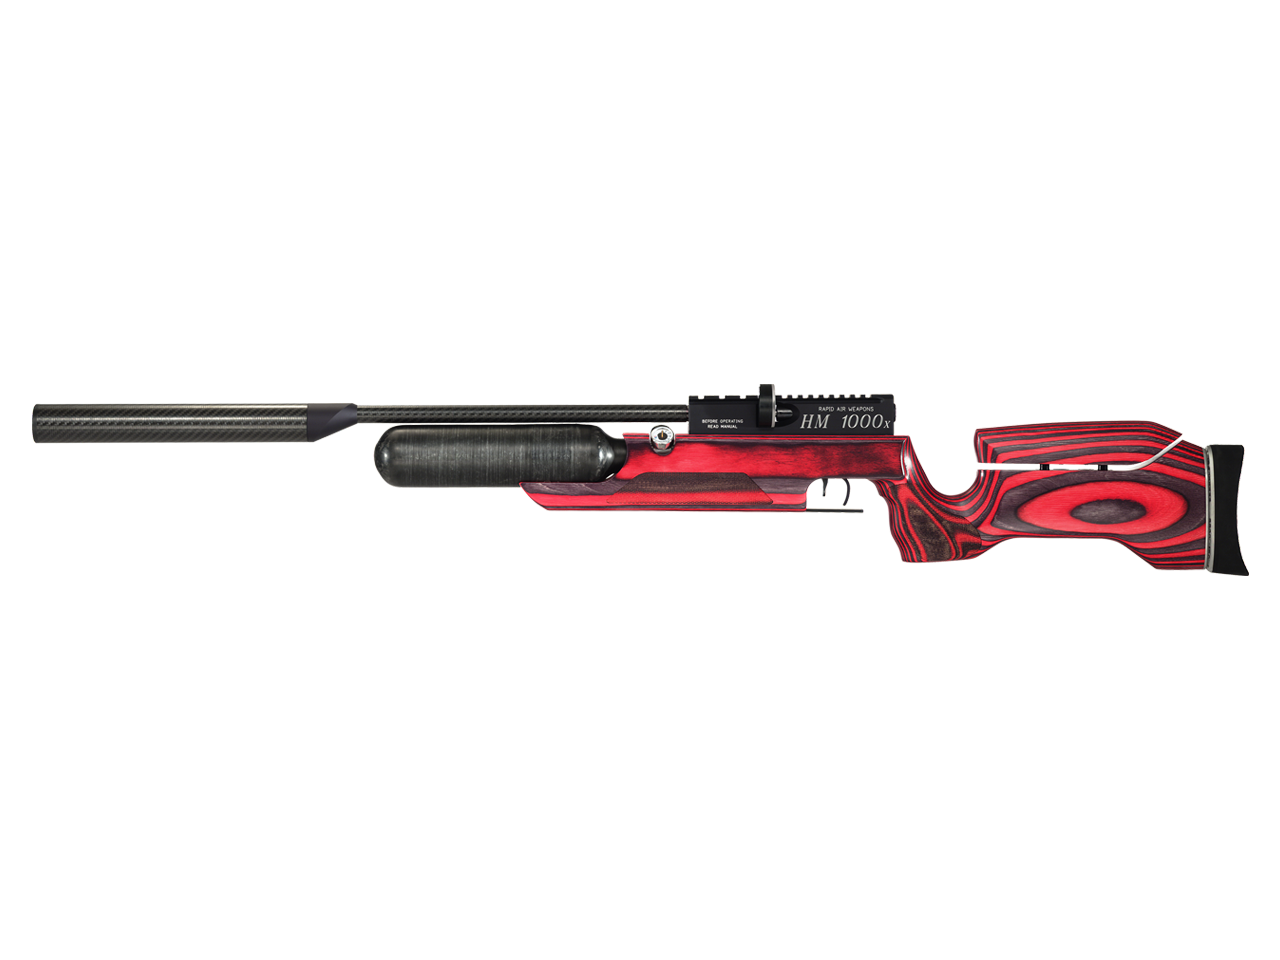 RAW PCP Rifle HM1000X LRT Wood